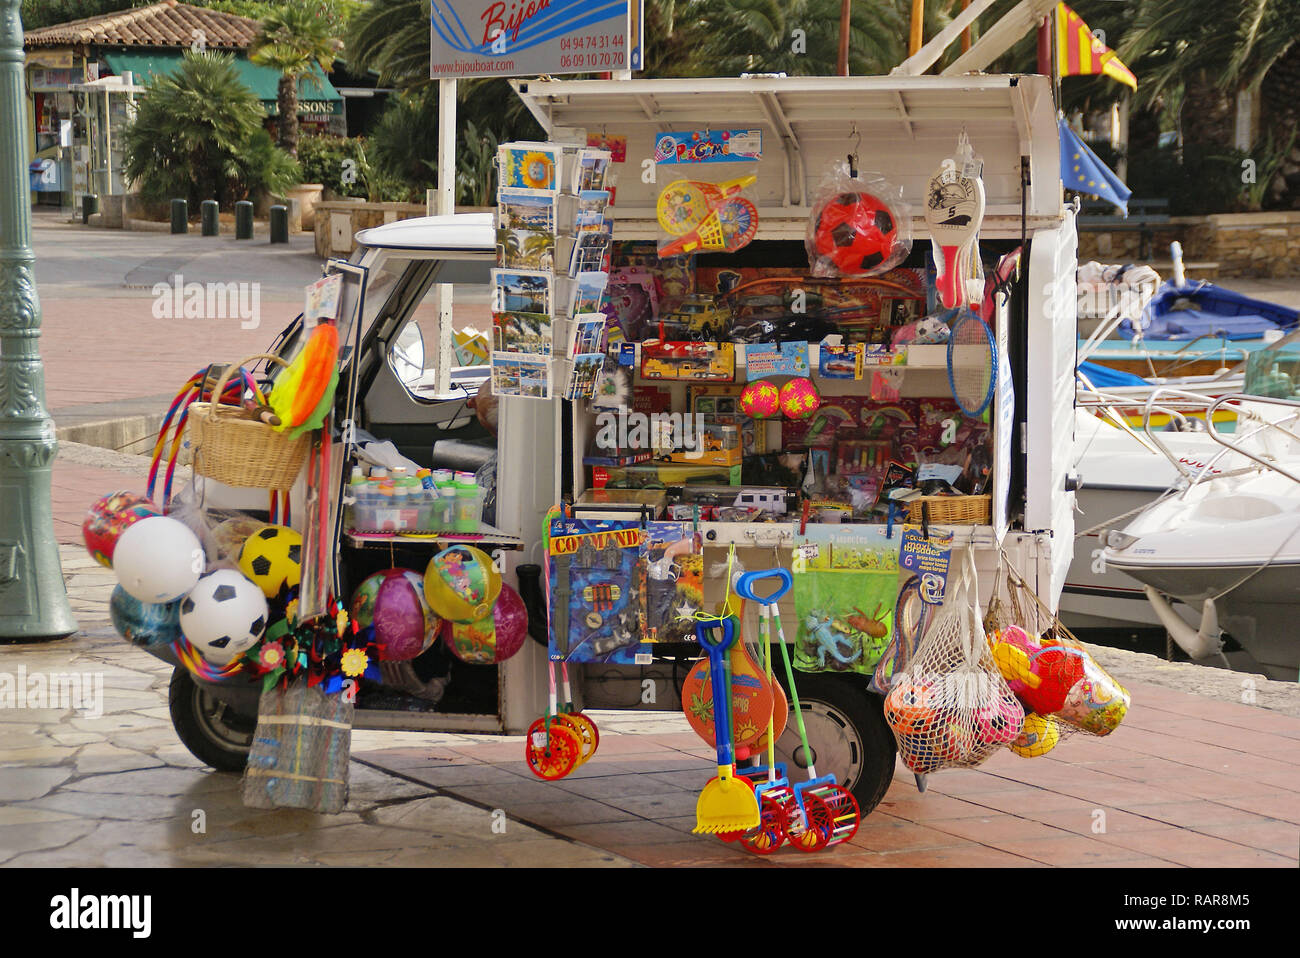 Provence in France: A mobile toy shop, spotted in Sanary-sur-Mer - Stock Image